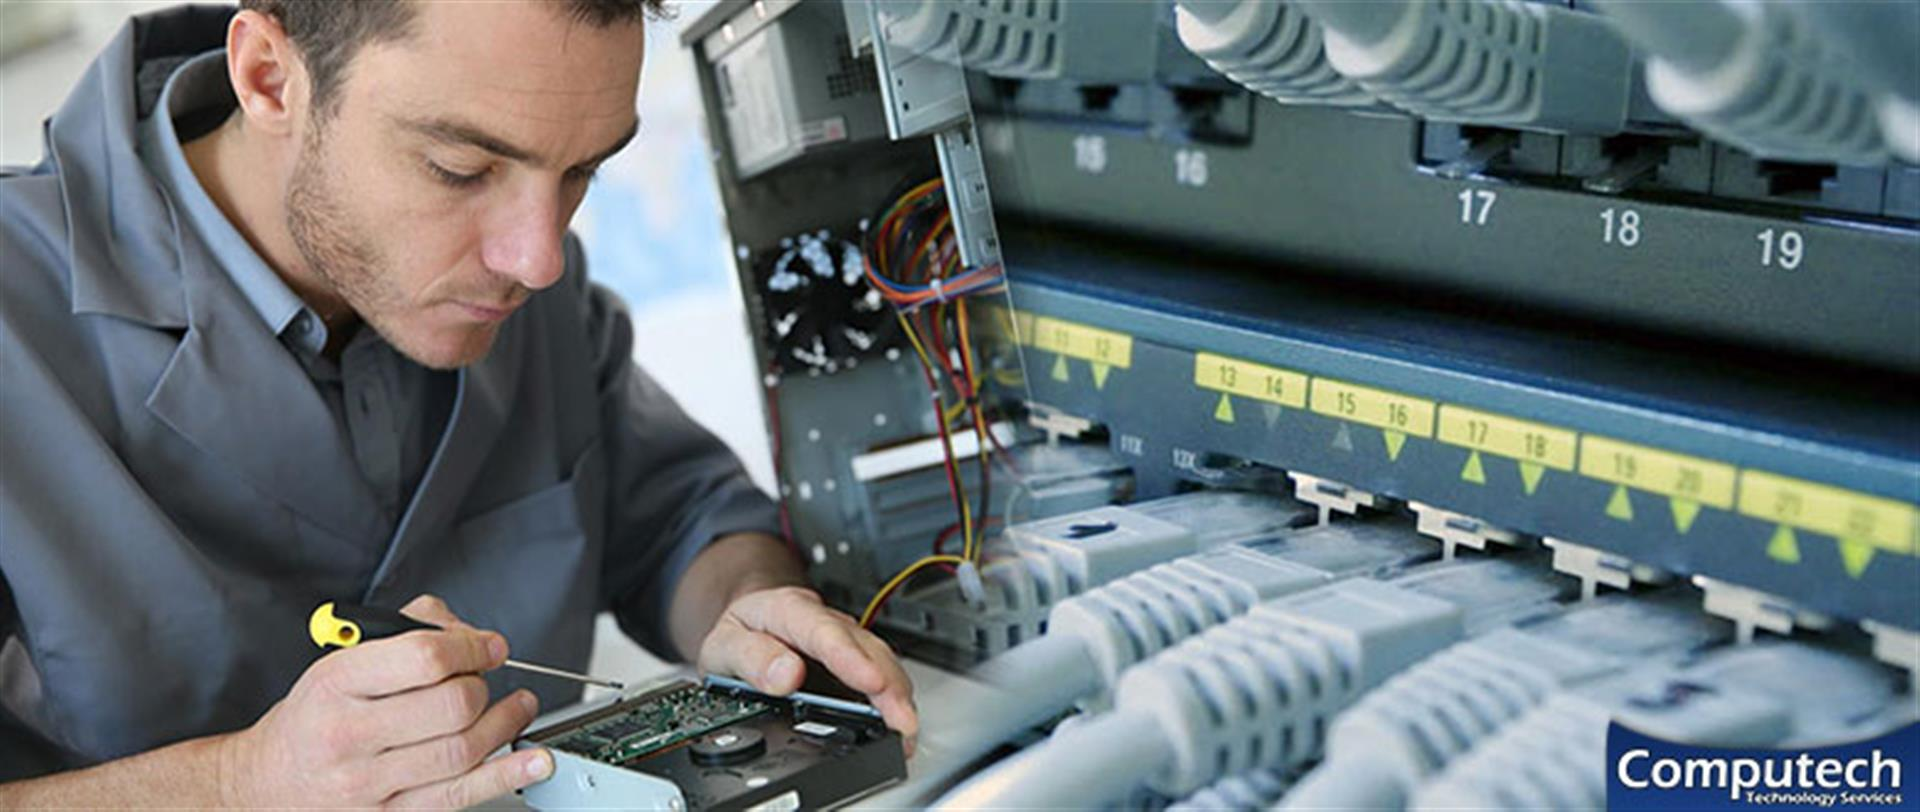 Ozark Alabama On Site Computer PC & Printer Repair, Networking, Telecom & Data Wiring Services